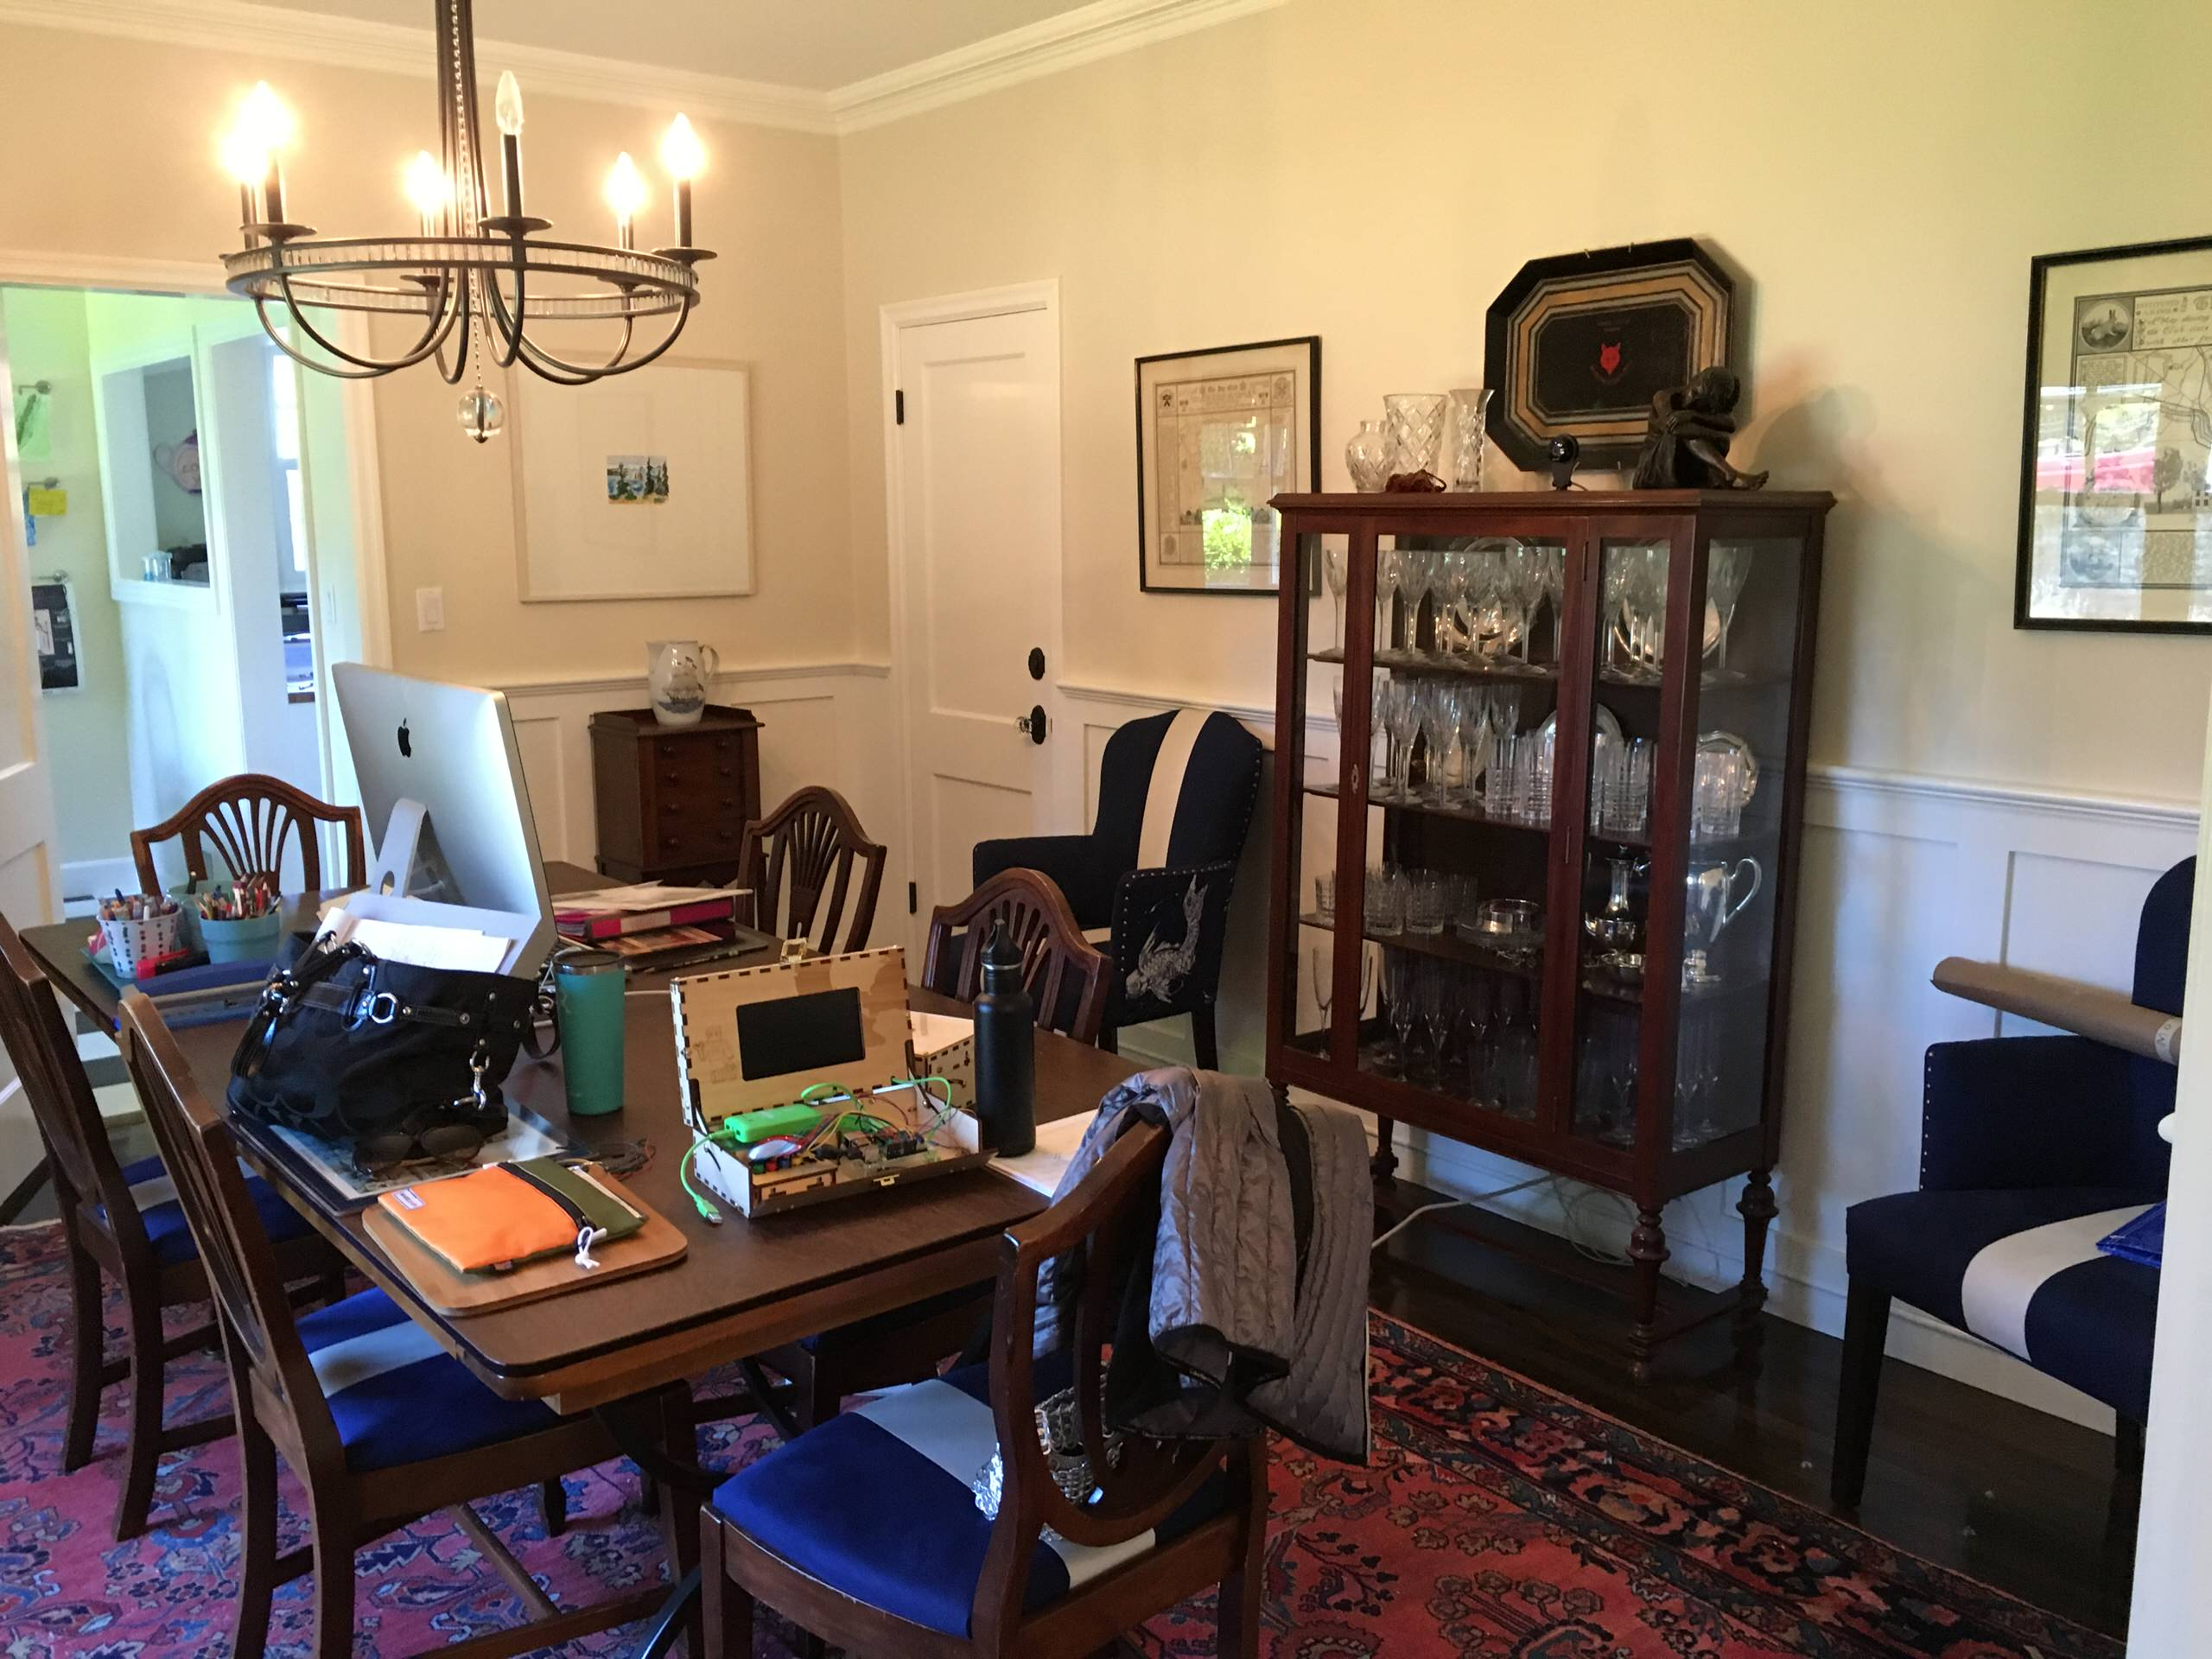 Colonial Revival - Dining rm, before